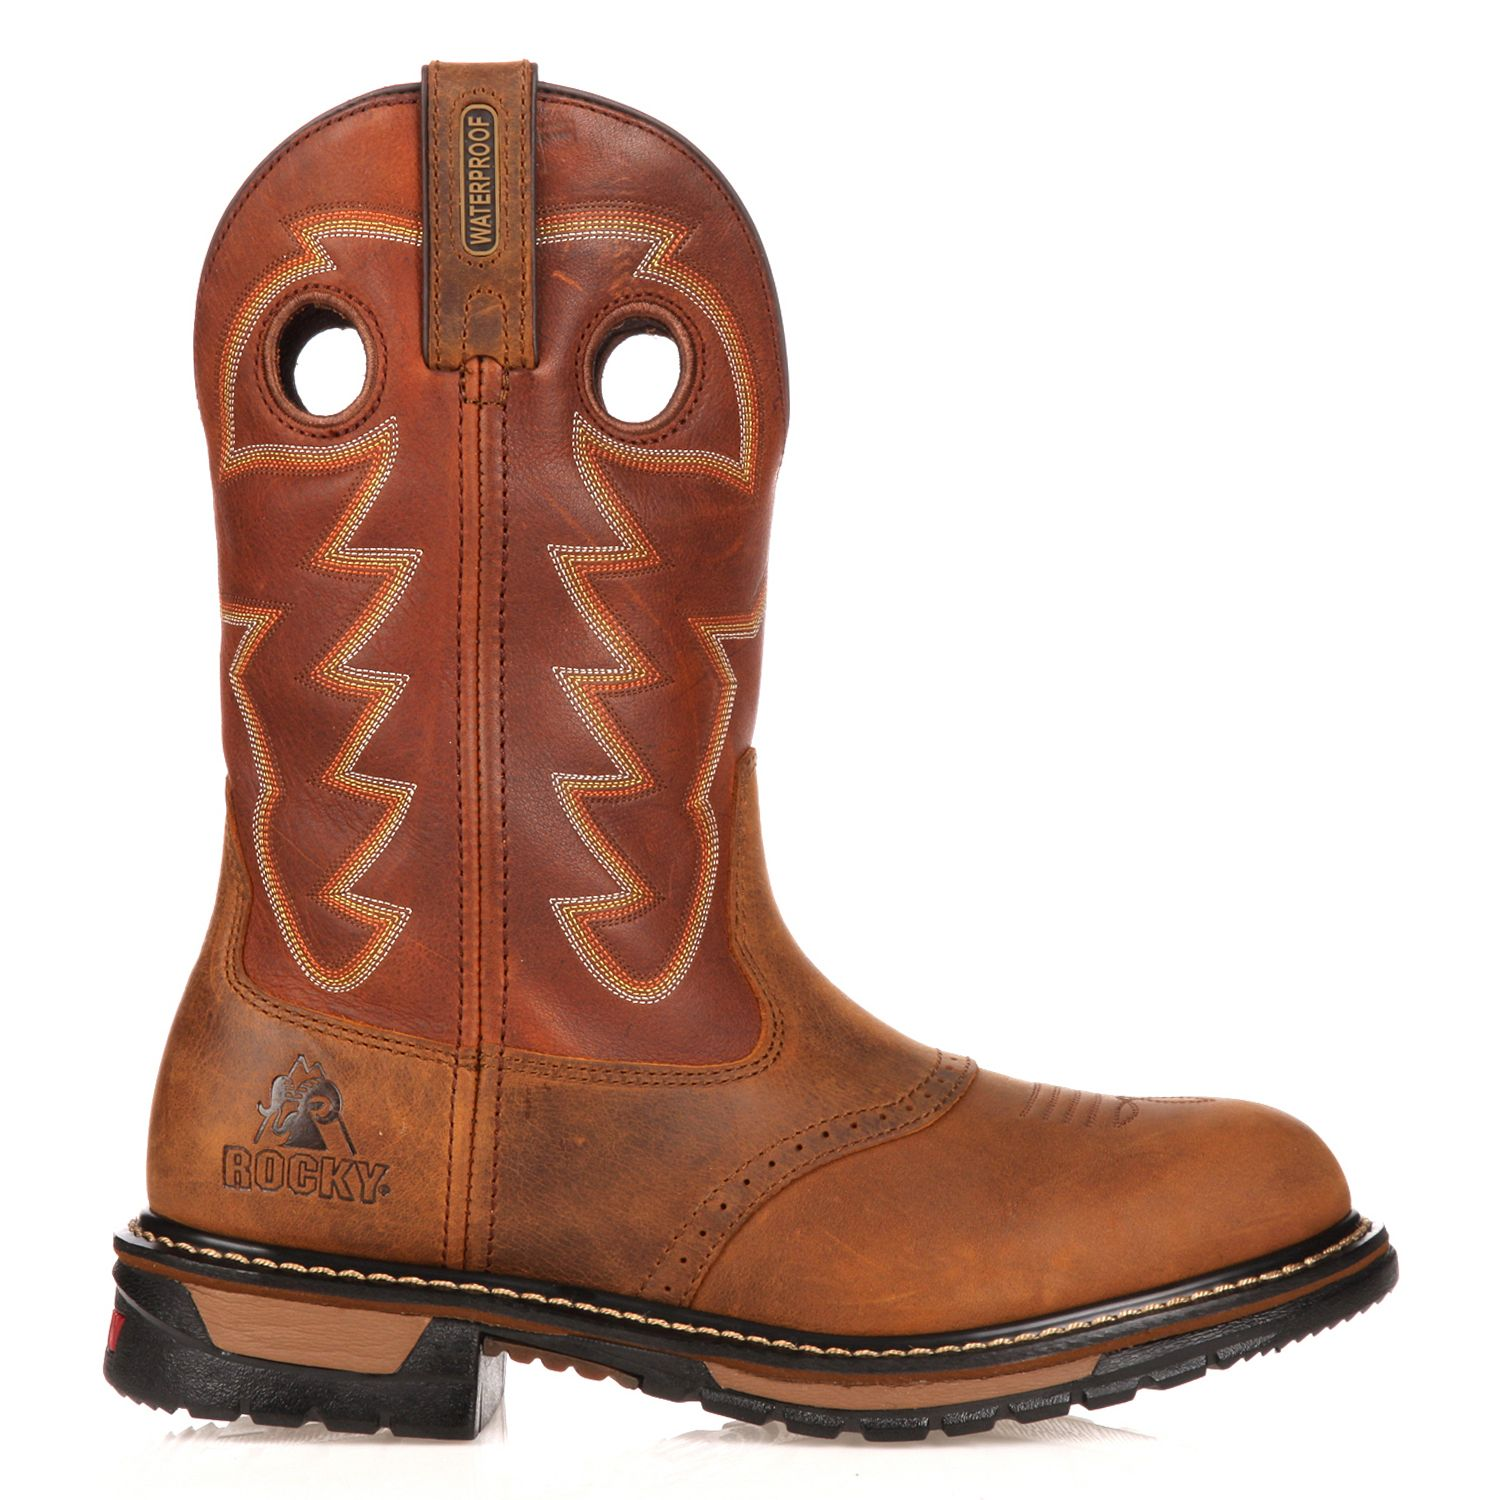 0ed996f36df Rocky Boots - Shoes | Kohl's